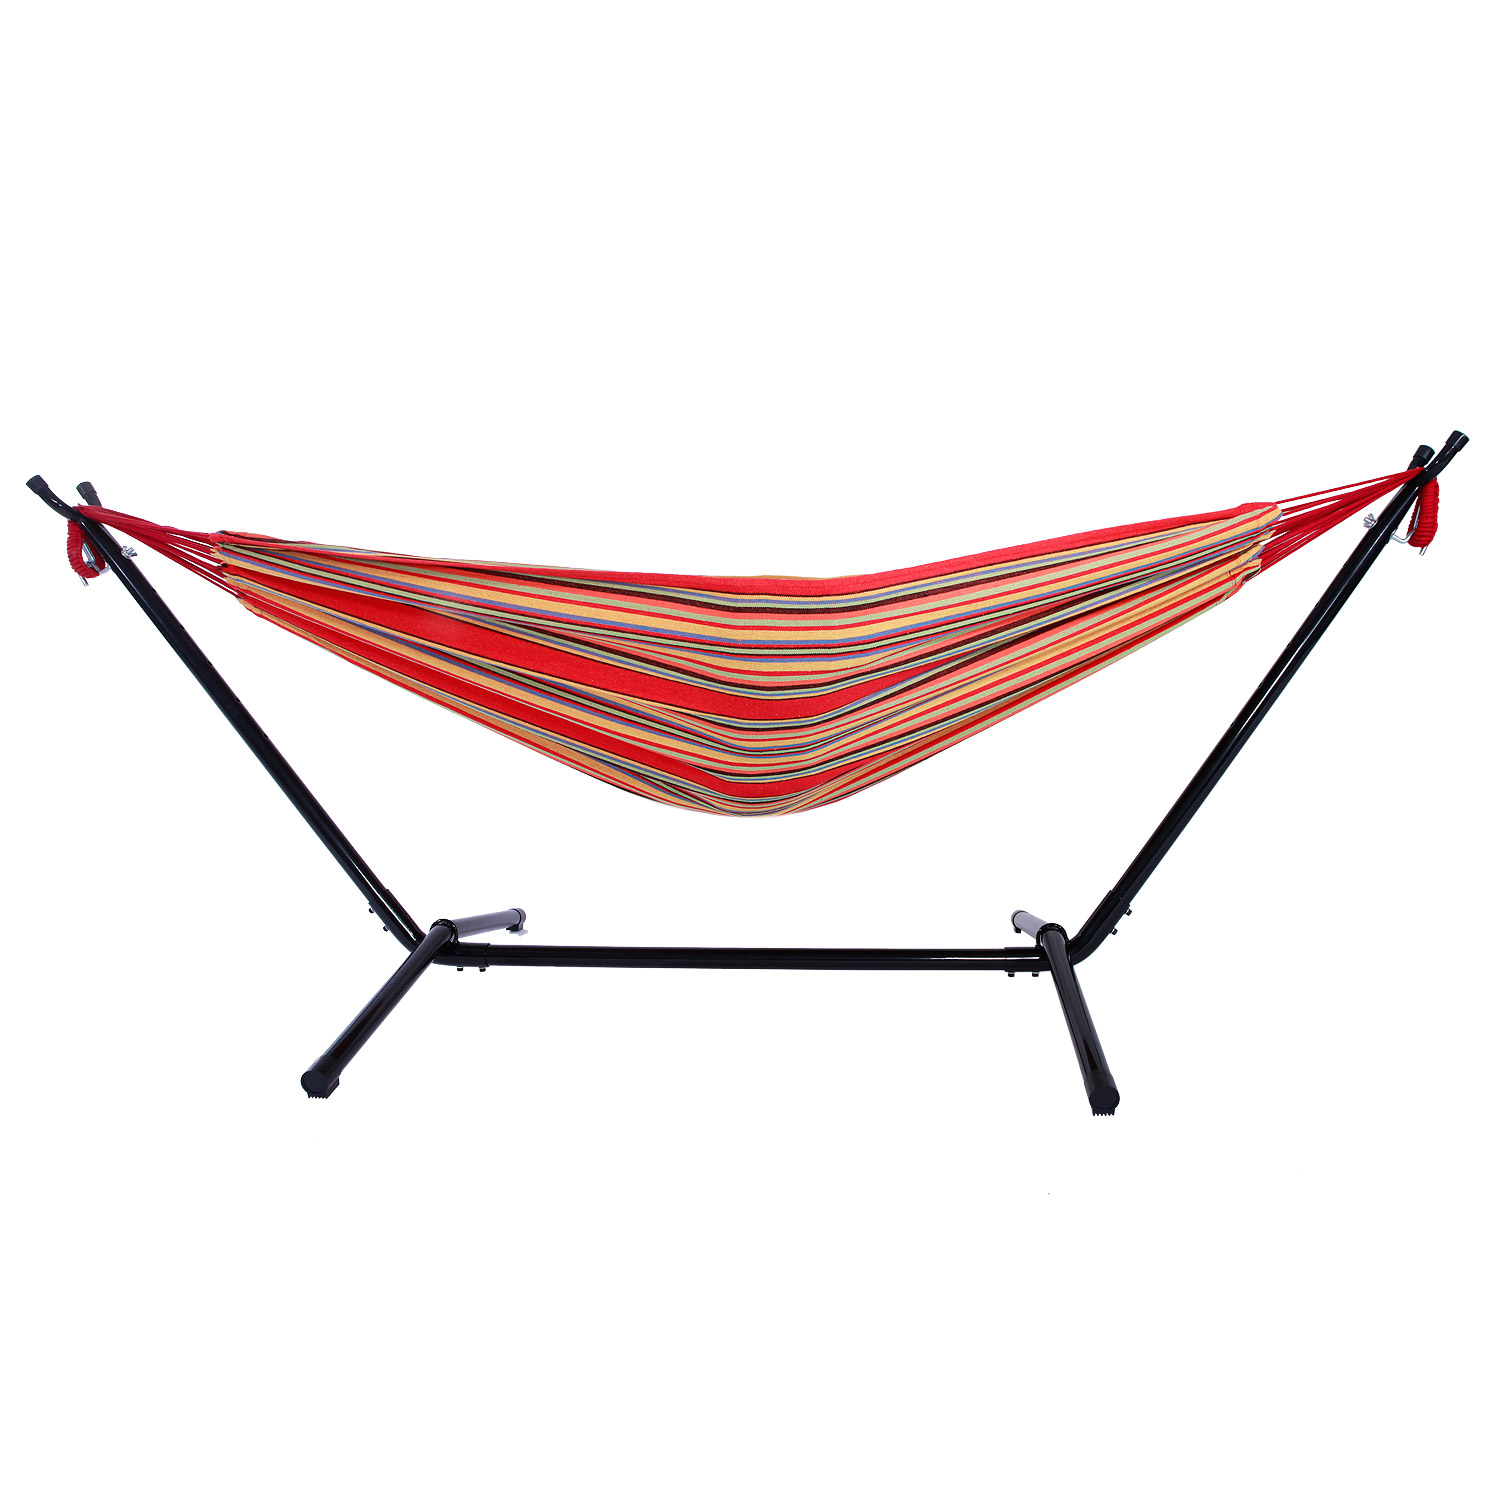 Zimtown Outdoor Swing Chair Double Hammock Steel Stand Camping Bed Includes Portable Carrying Case